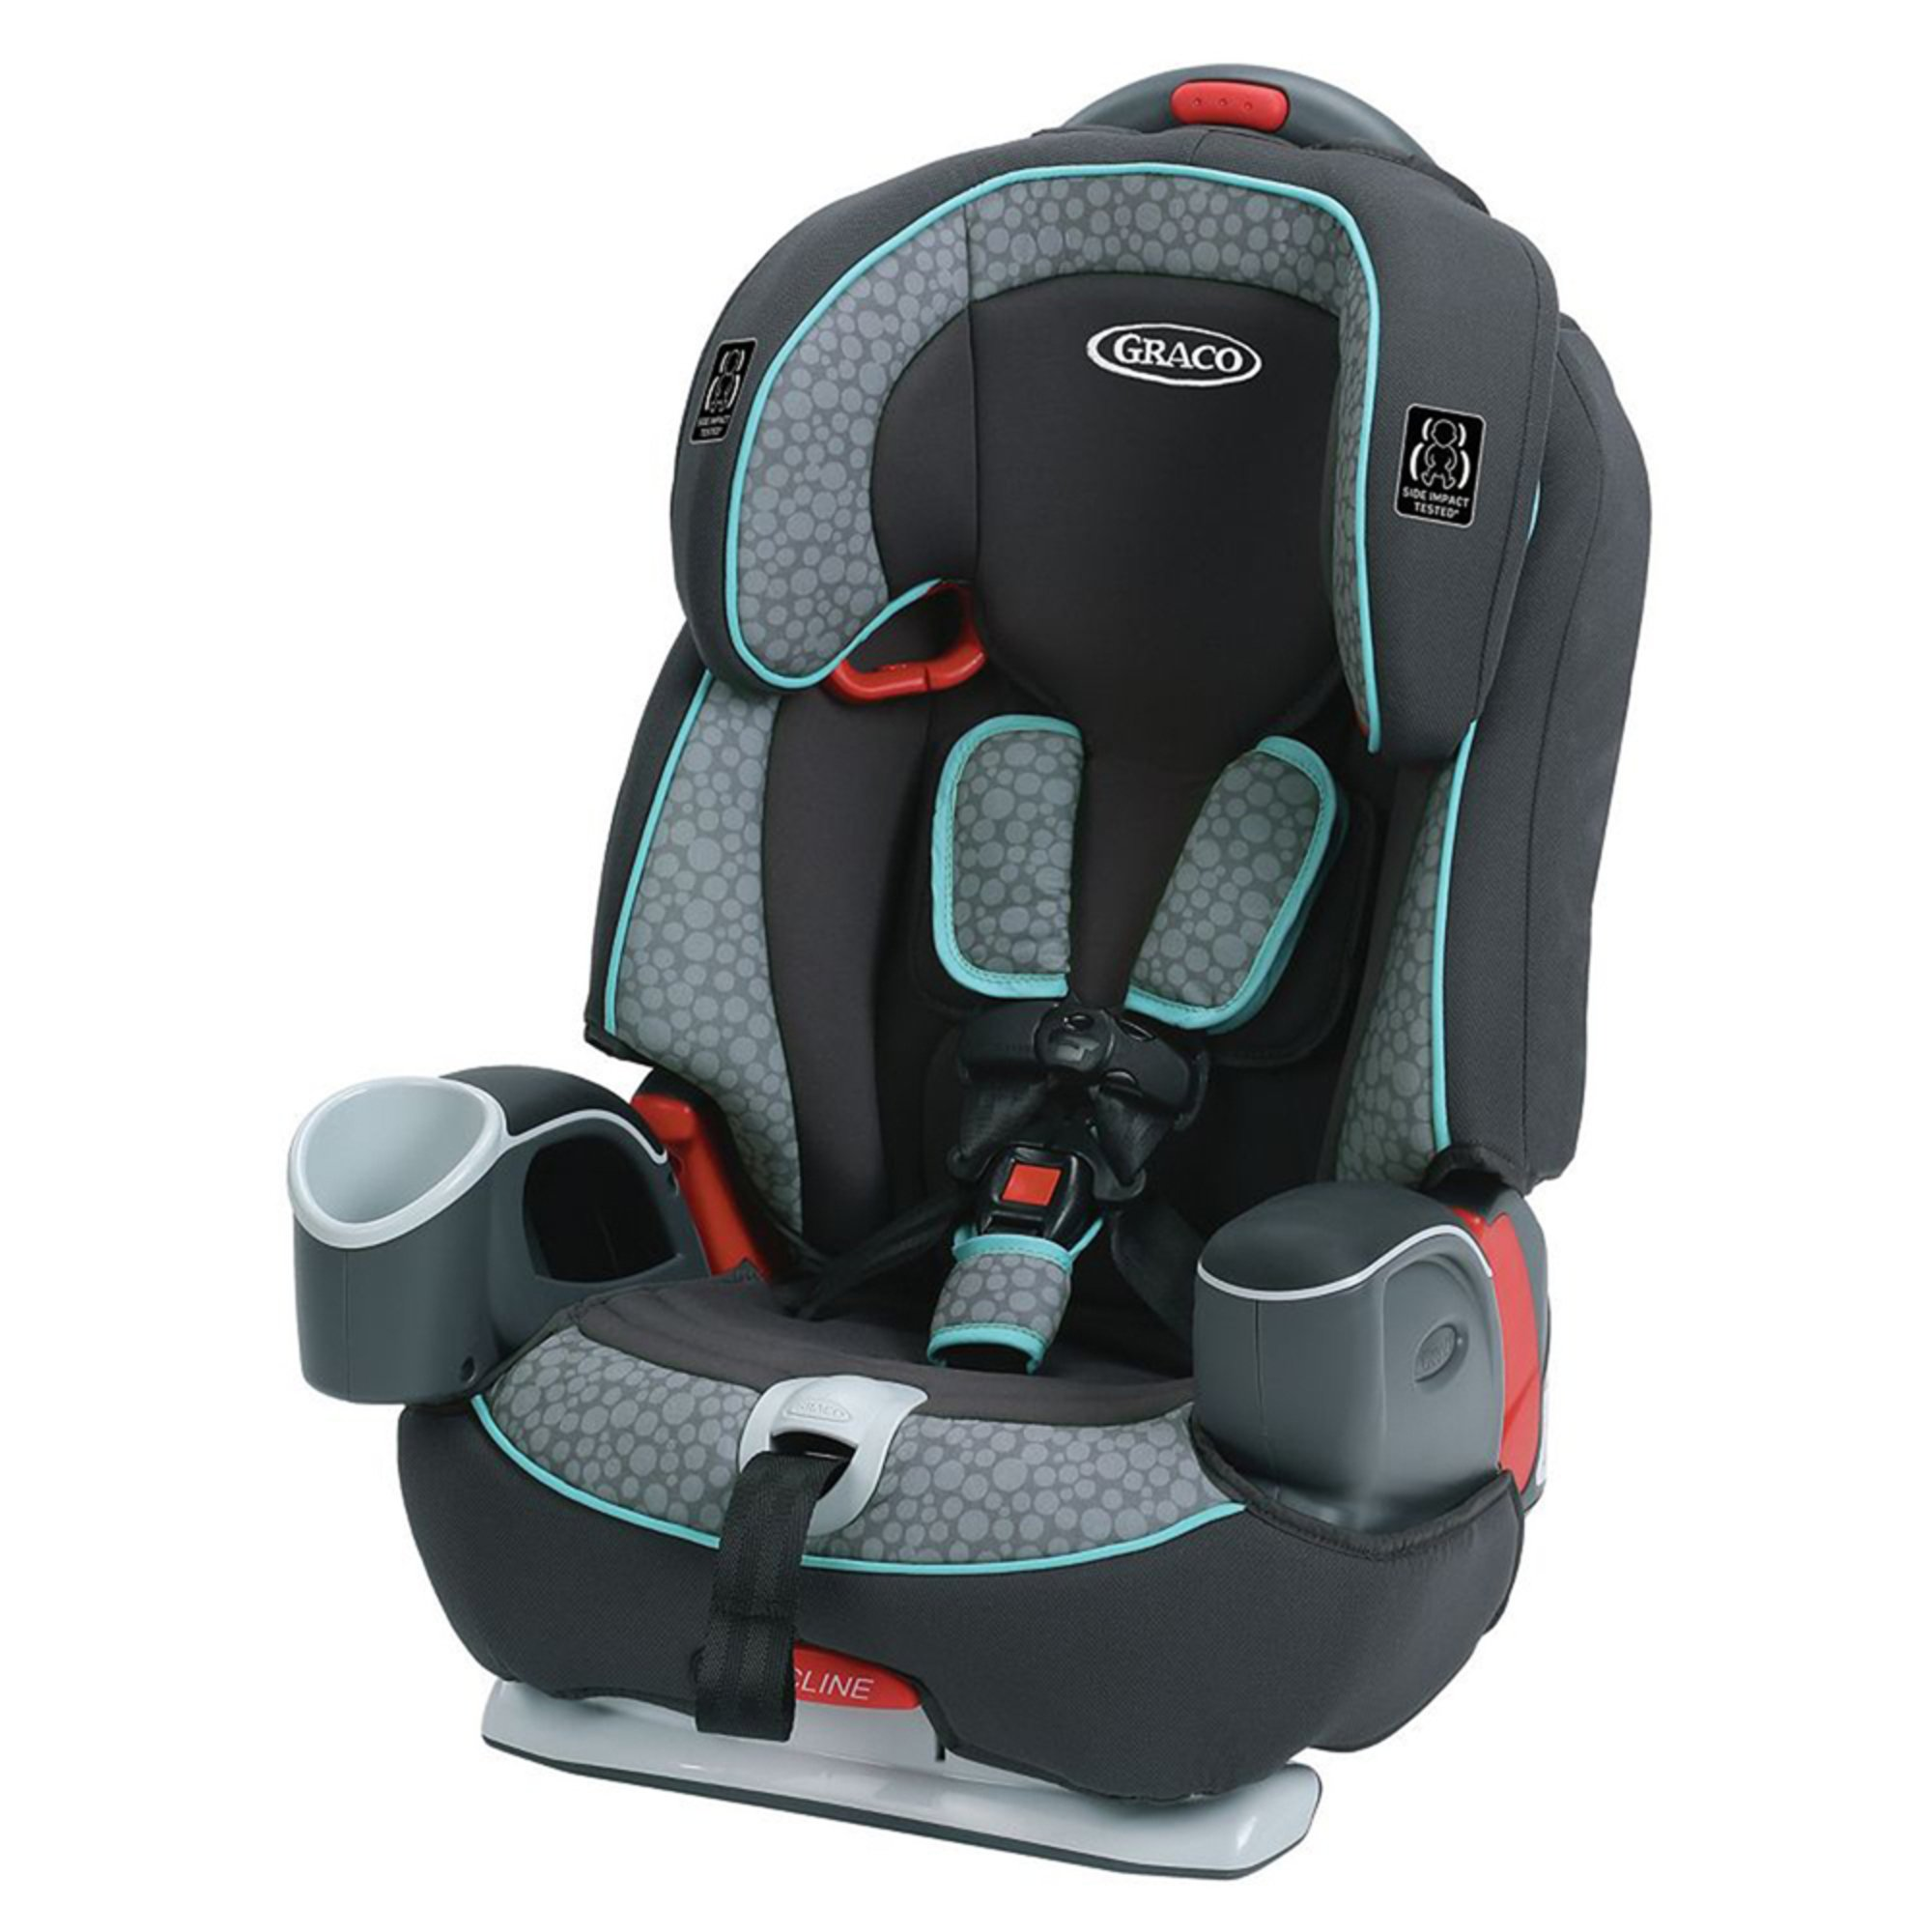 Graco Nautilus® 65 3-in-1 Harness Booster Car Seat, Sully | Harness